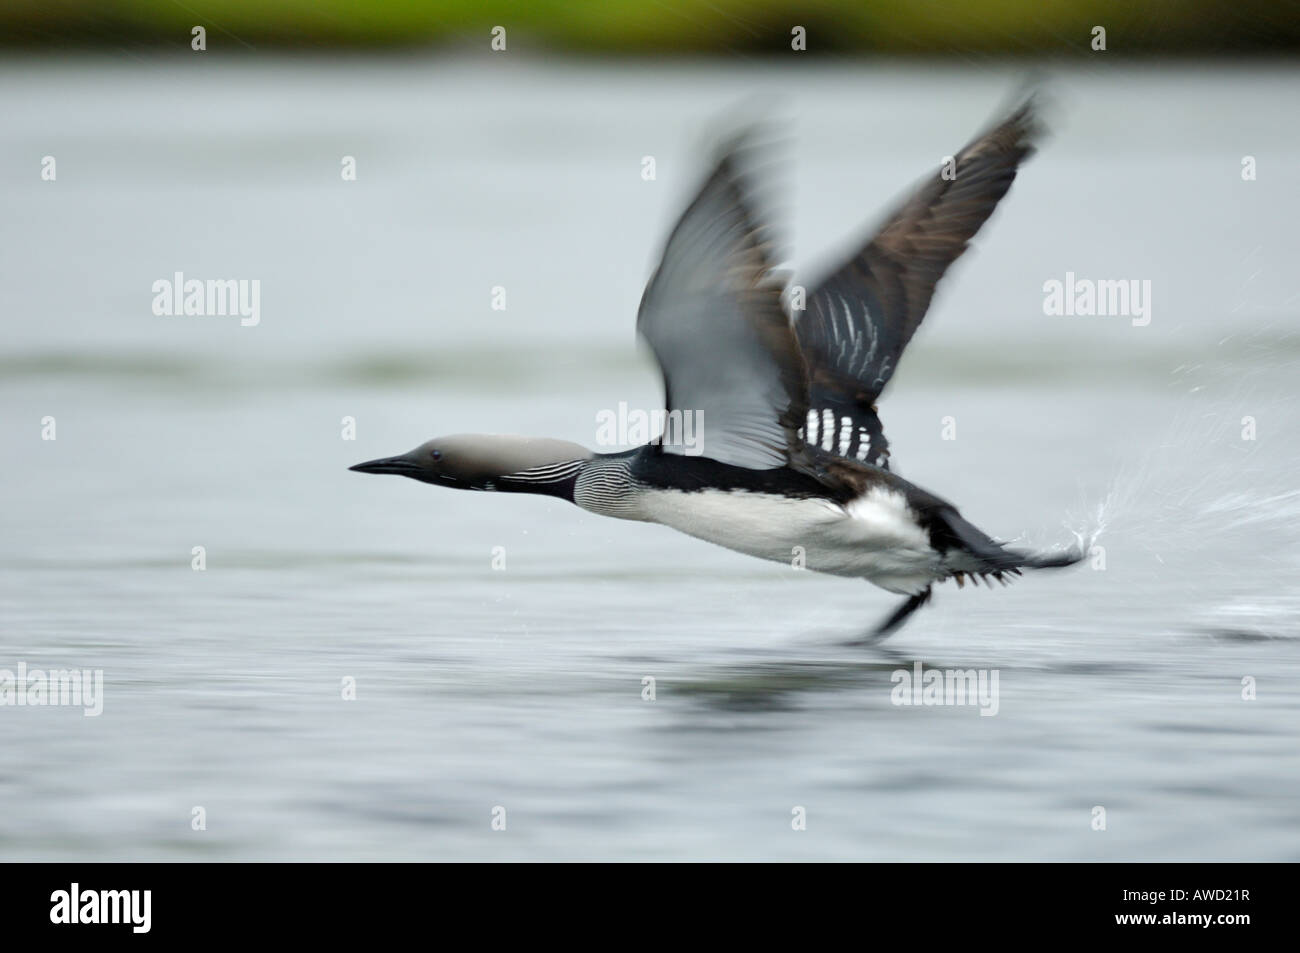 Arctic Loon (Gavia arctica) taking off from a lake surface, Norway, Scandinavia, Europe Stock Photo